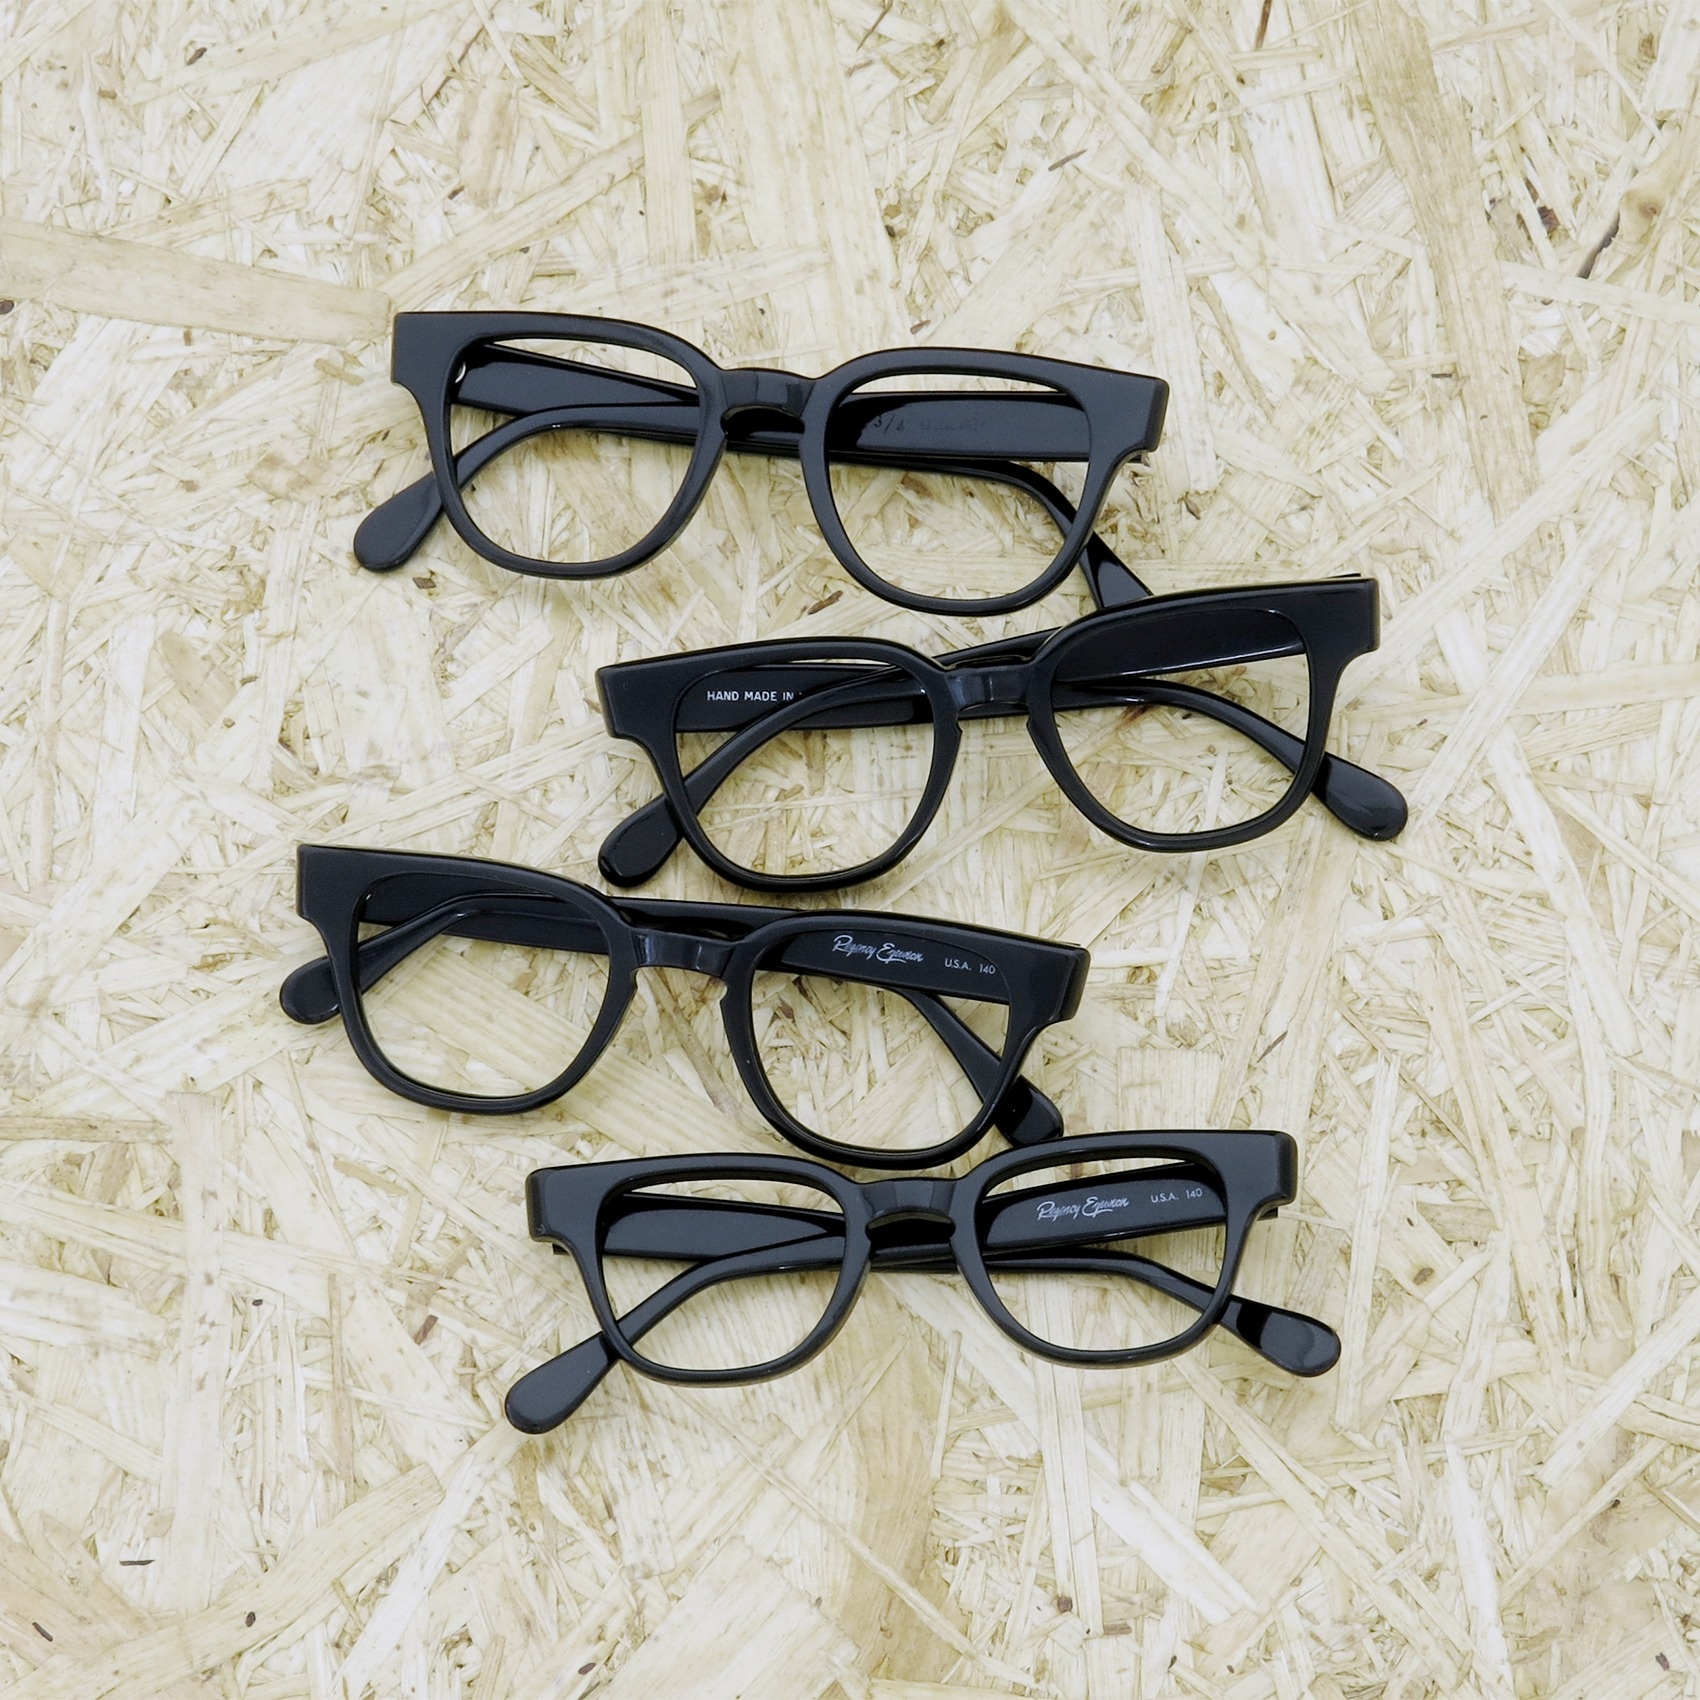 TART OPTICAL / Regency Eyewear bryan